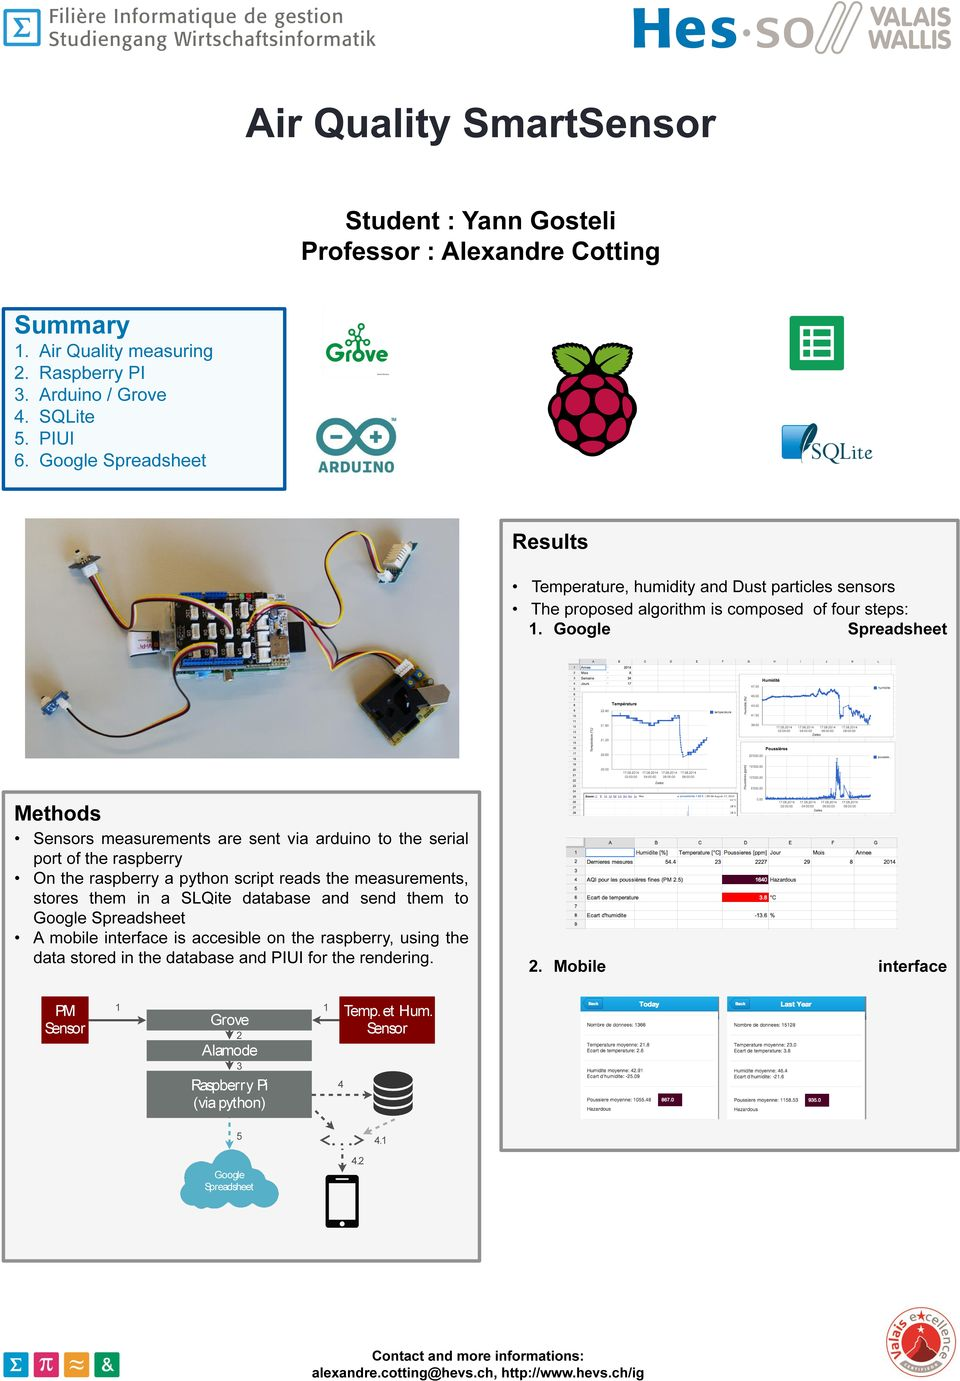 Google Spreadsheet Methods Sensors measurements are sent via arduino to the serial port of the raspberry On the raspberry a python script reads the measurements, stores them in a SLQite database and